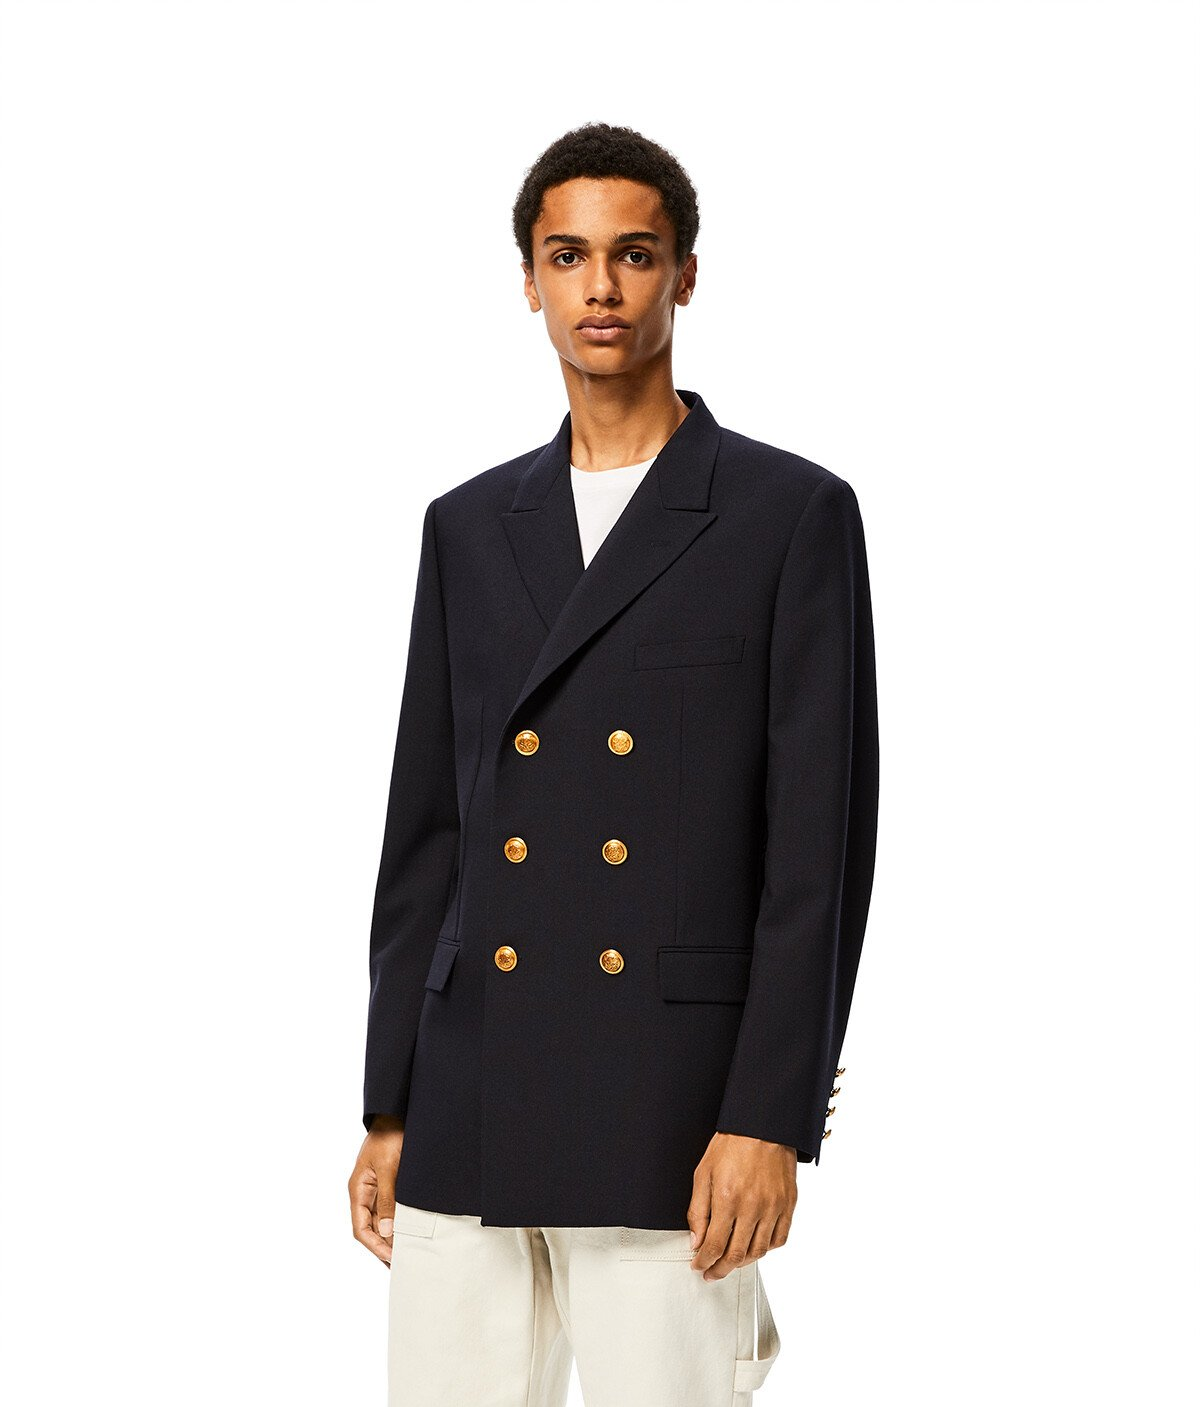 LOEWE Double Breasted Jacket Navy Blue front